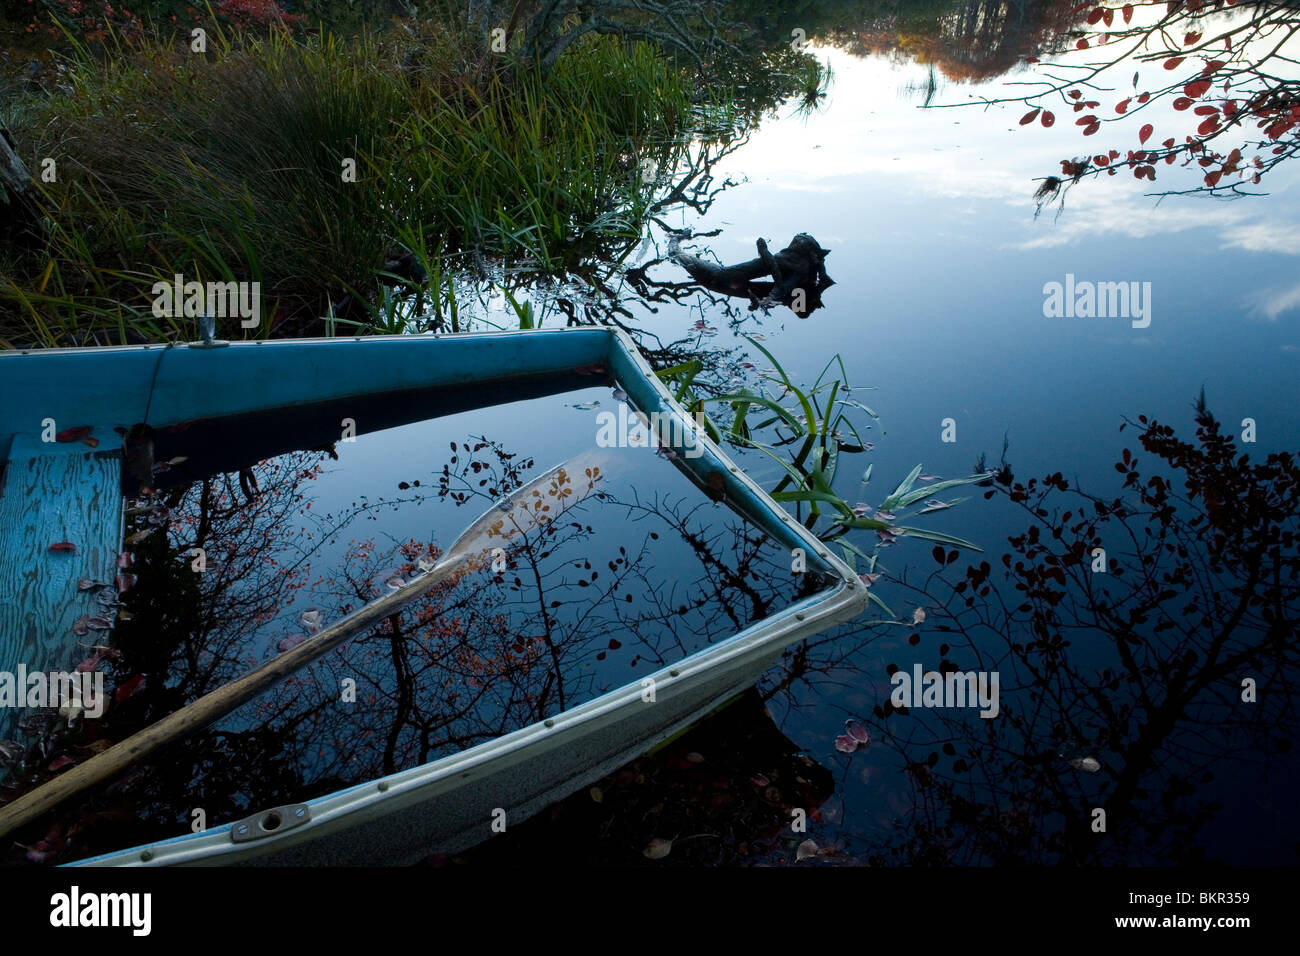 Flatboat with a paddle and early morning scene. Nantucket - Stock Image